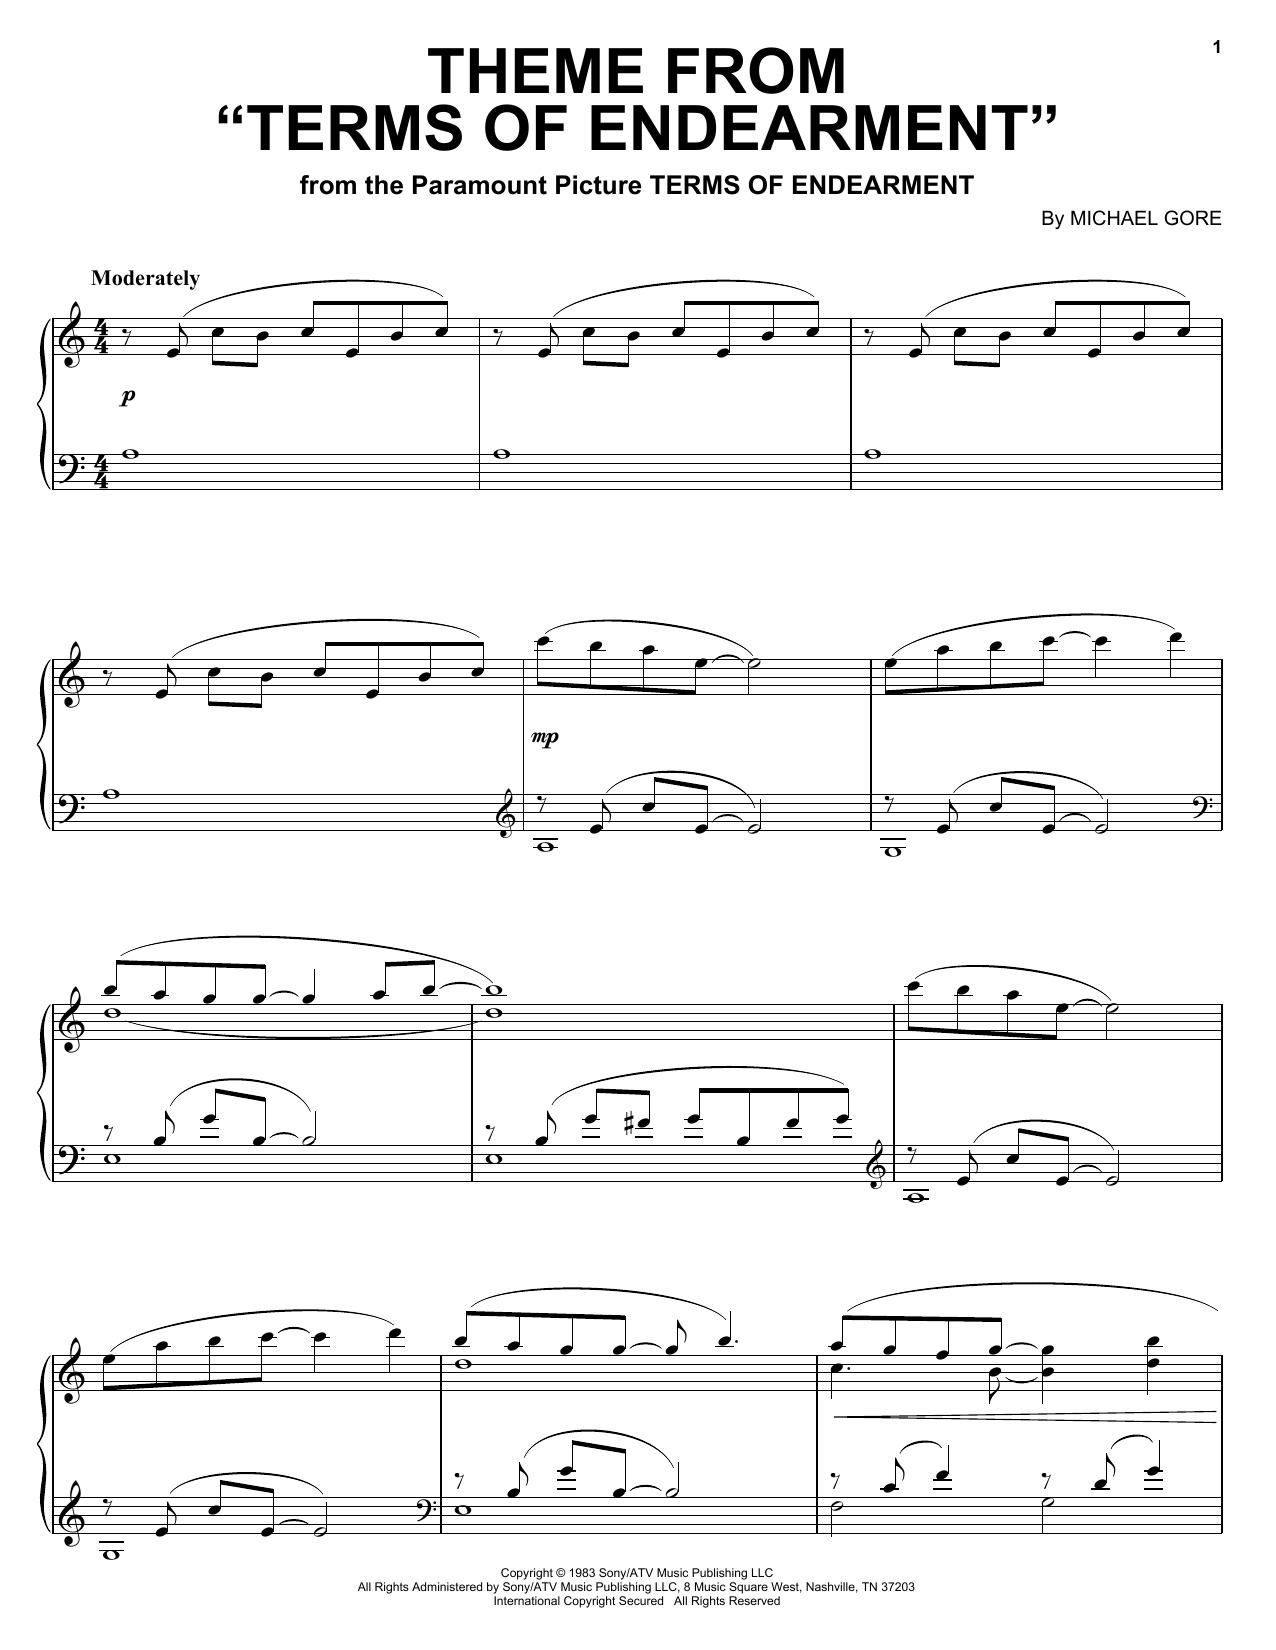 Michael Gore Theme from Terms Of Endearment sheet music notes and chords. Download Printable PDF.